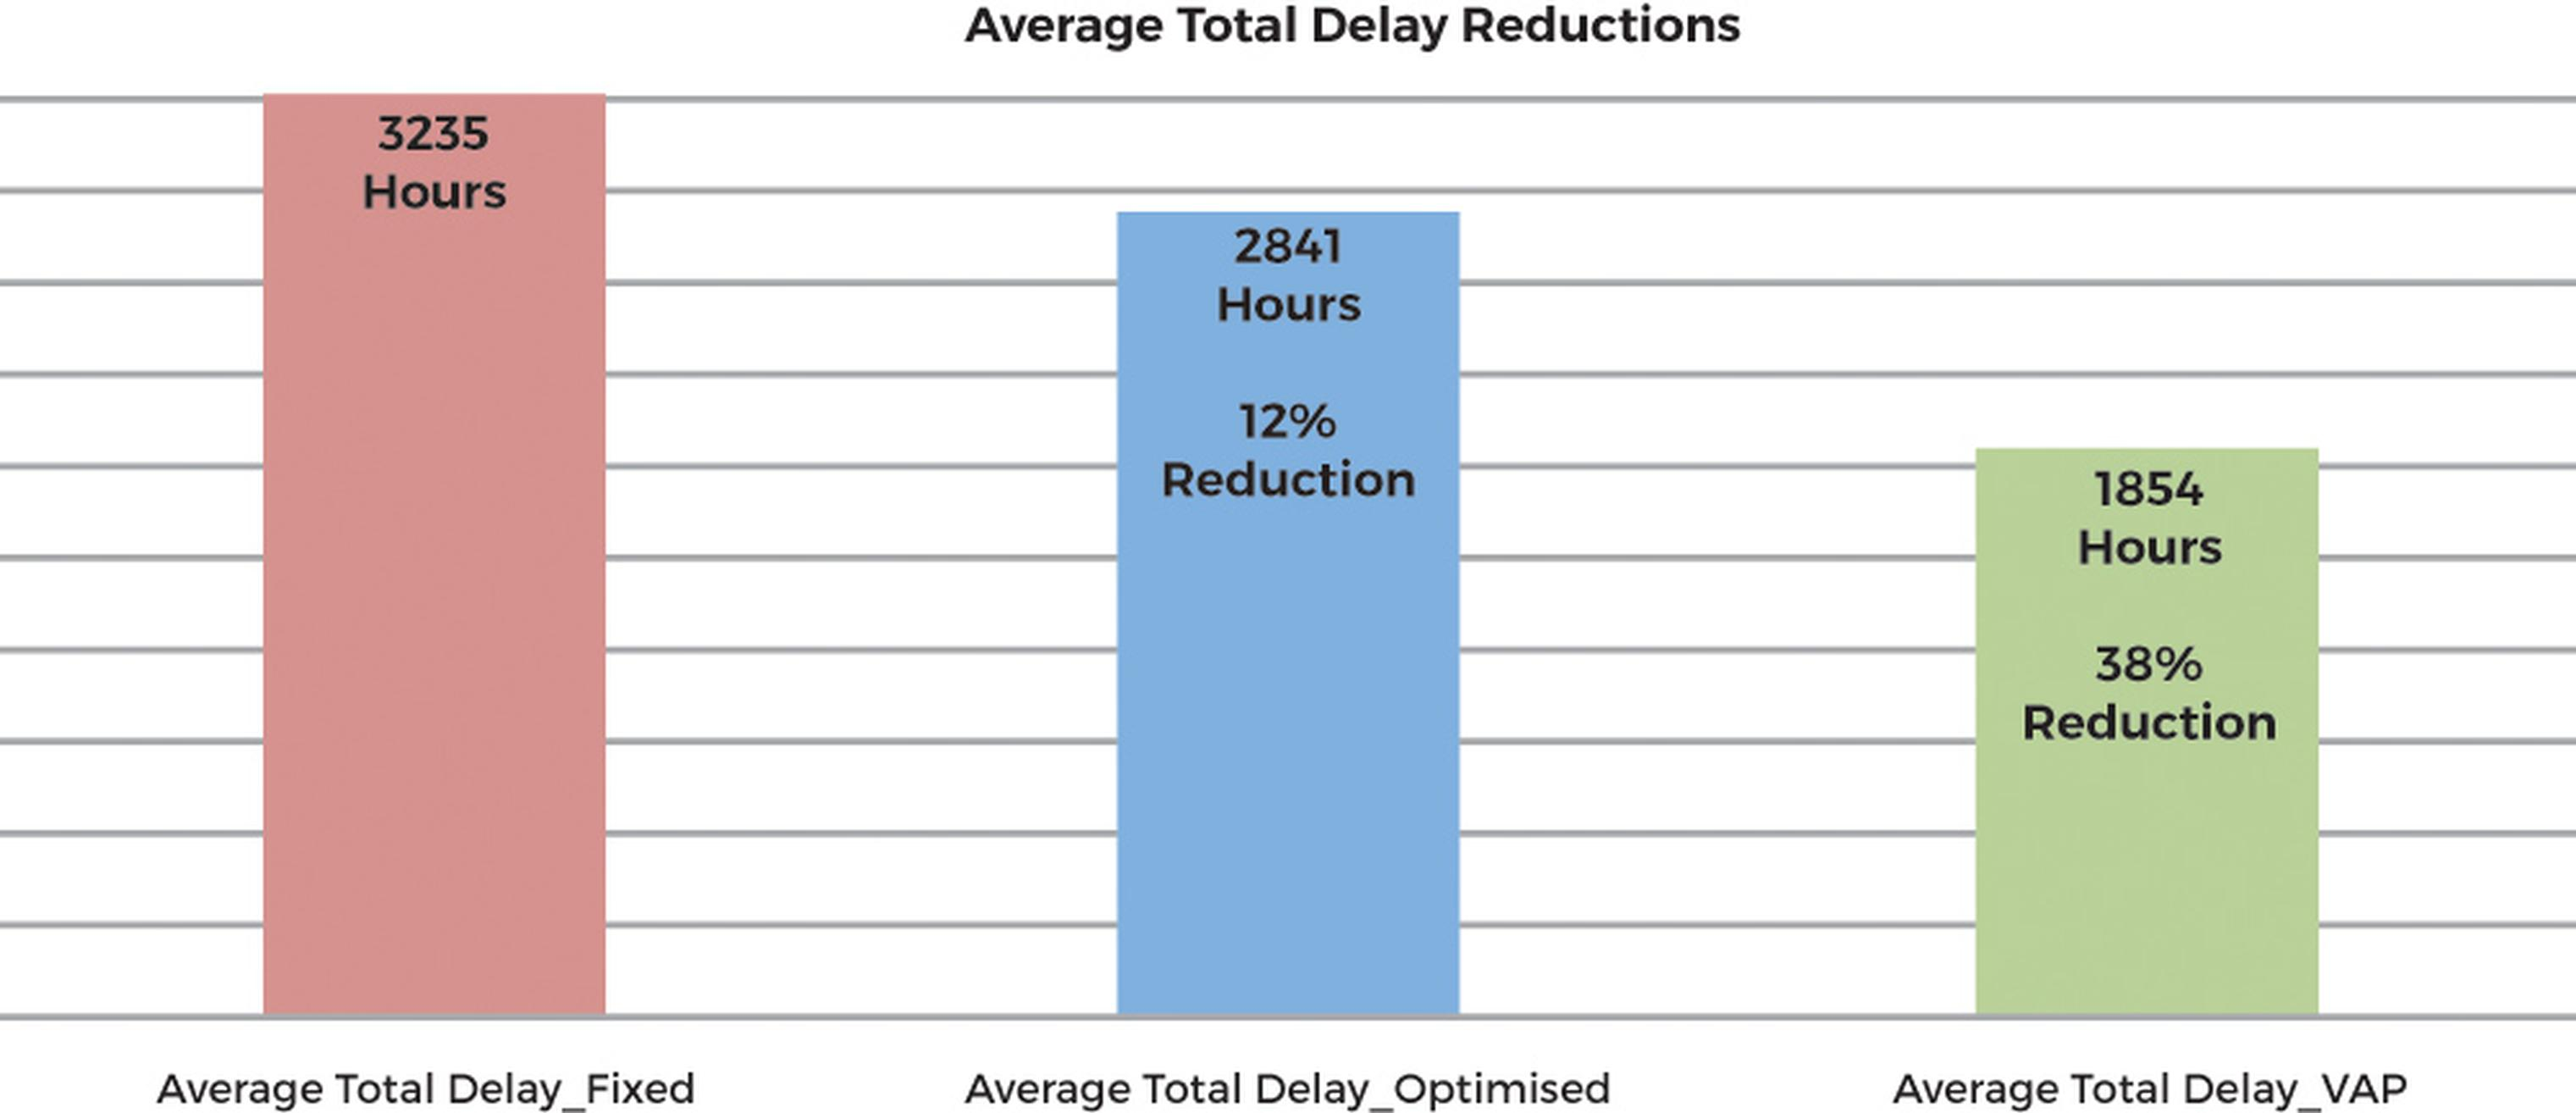 Figure 2: Average Total Systemwide Delay Reductions